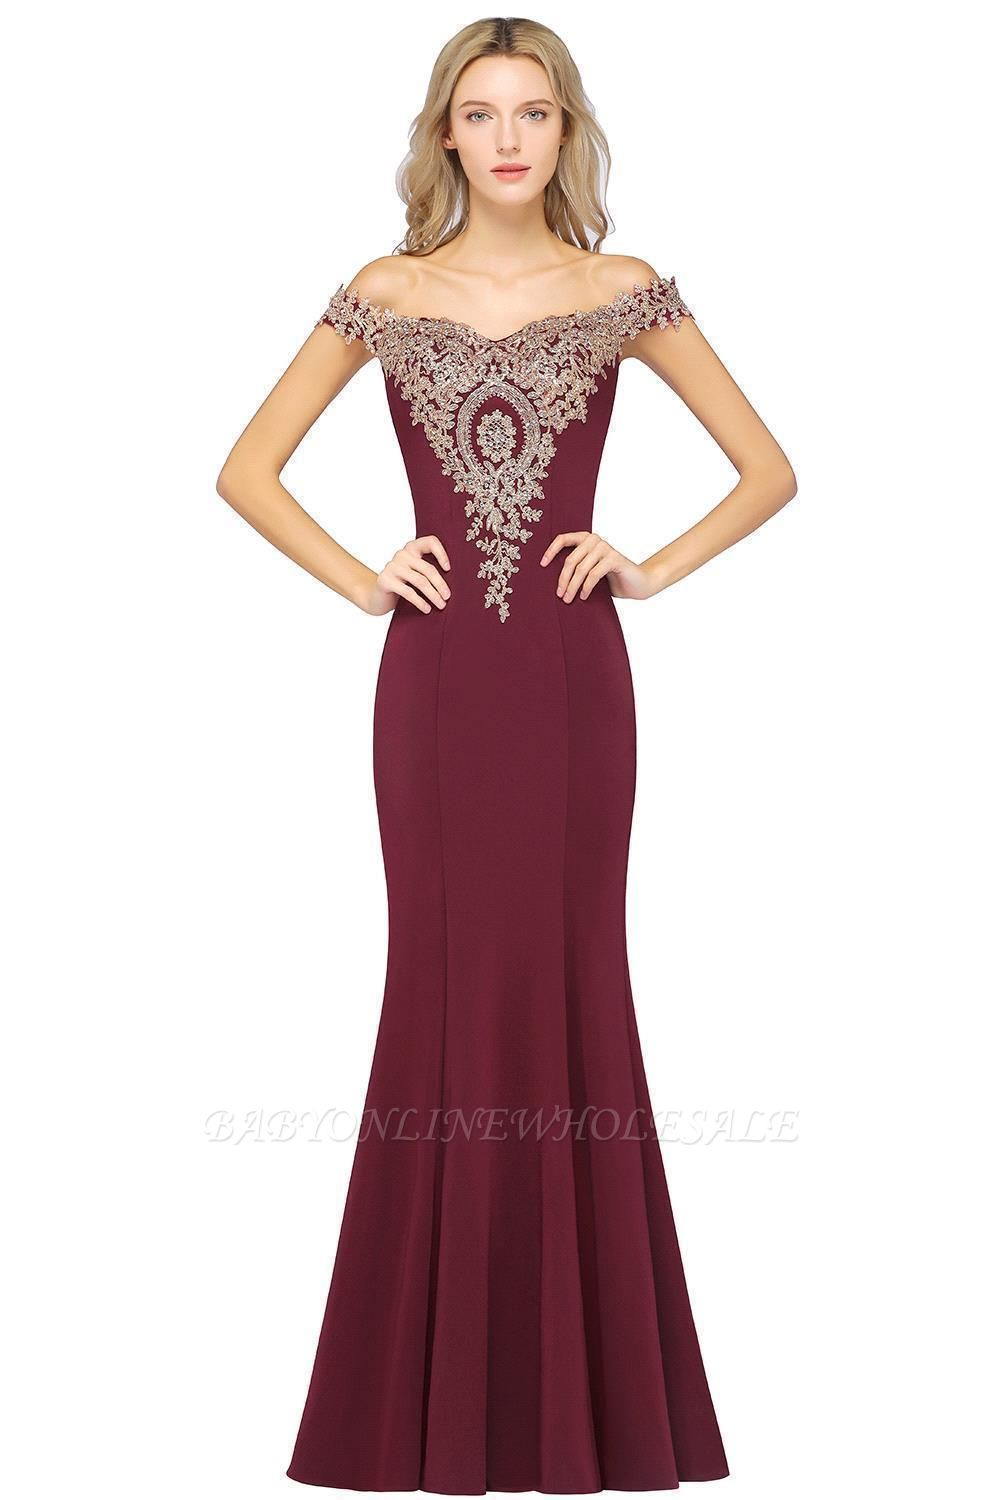 Simple Off-the-shoulder Cheap Burgundy Formal Dress with Lace Appliques